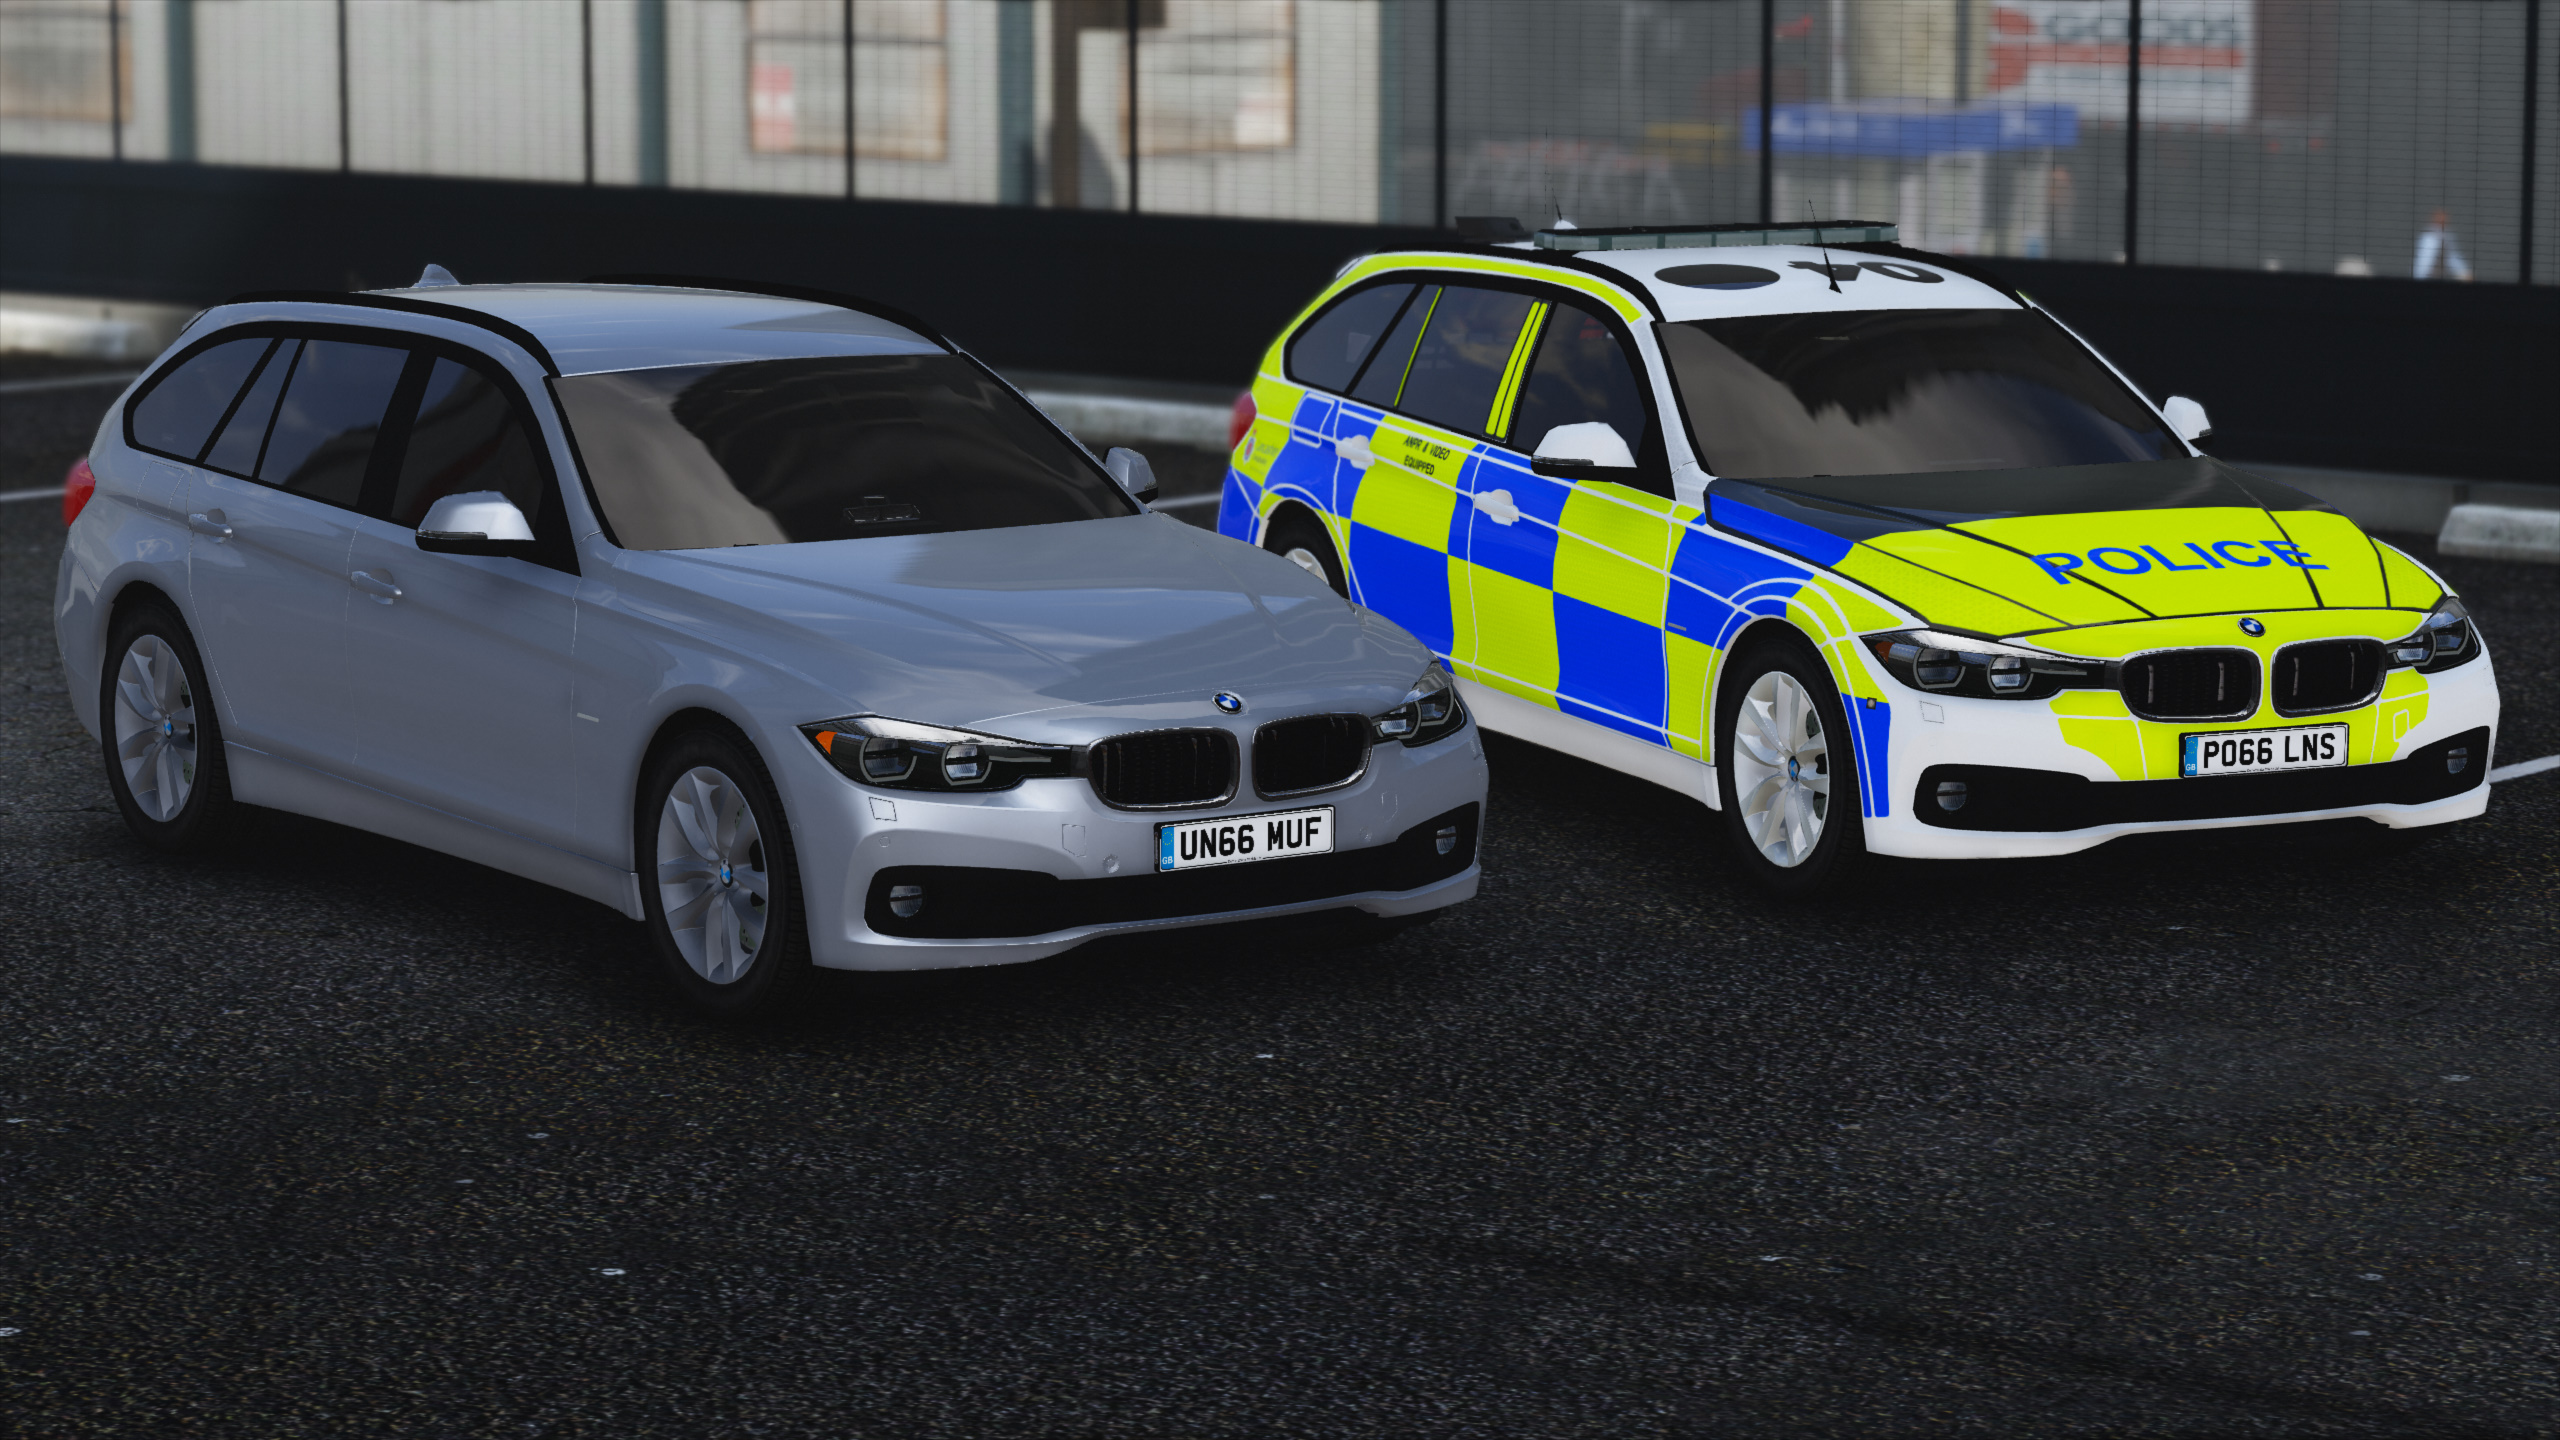 Bmw 5 series touring police 2013 uk wallpapers and hd images car - C91fa4 Gta5 2017 01 18 22 50 37 951